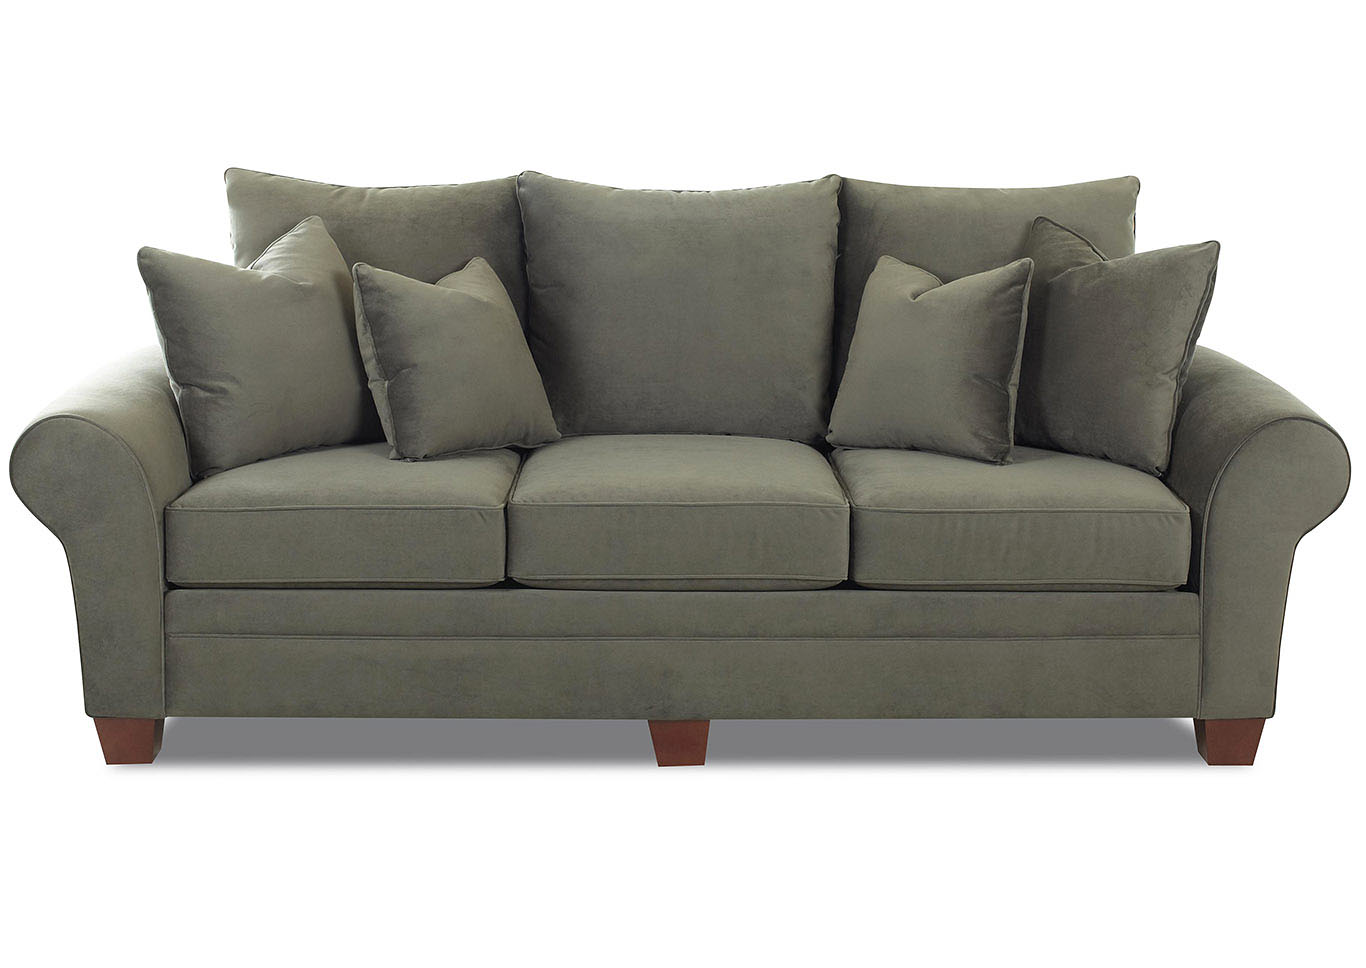 Kazler Pewter Stationary Fabric Sofa,Klaussner Home Furnishings